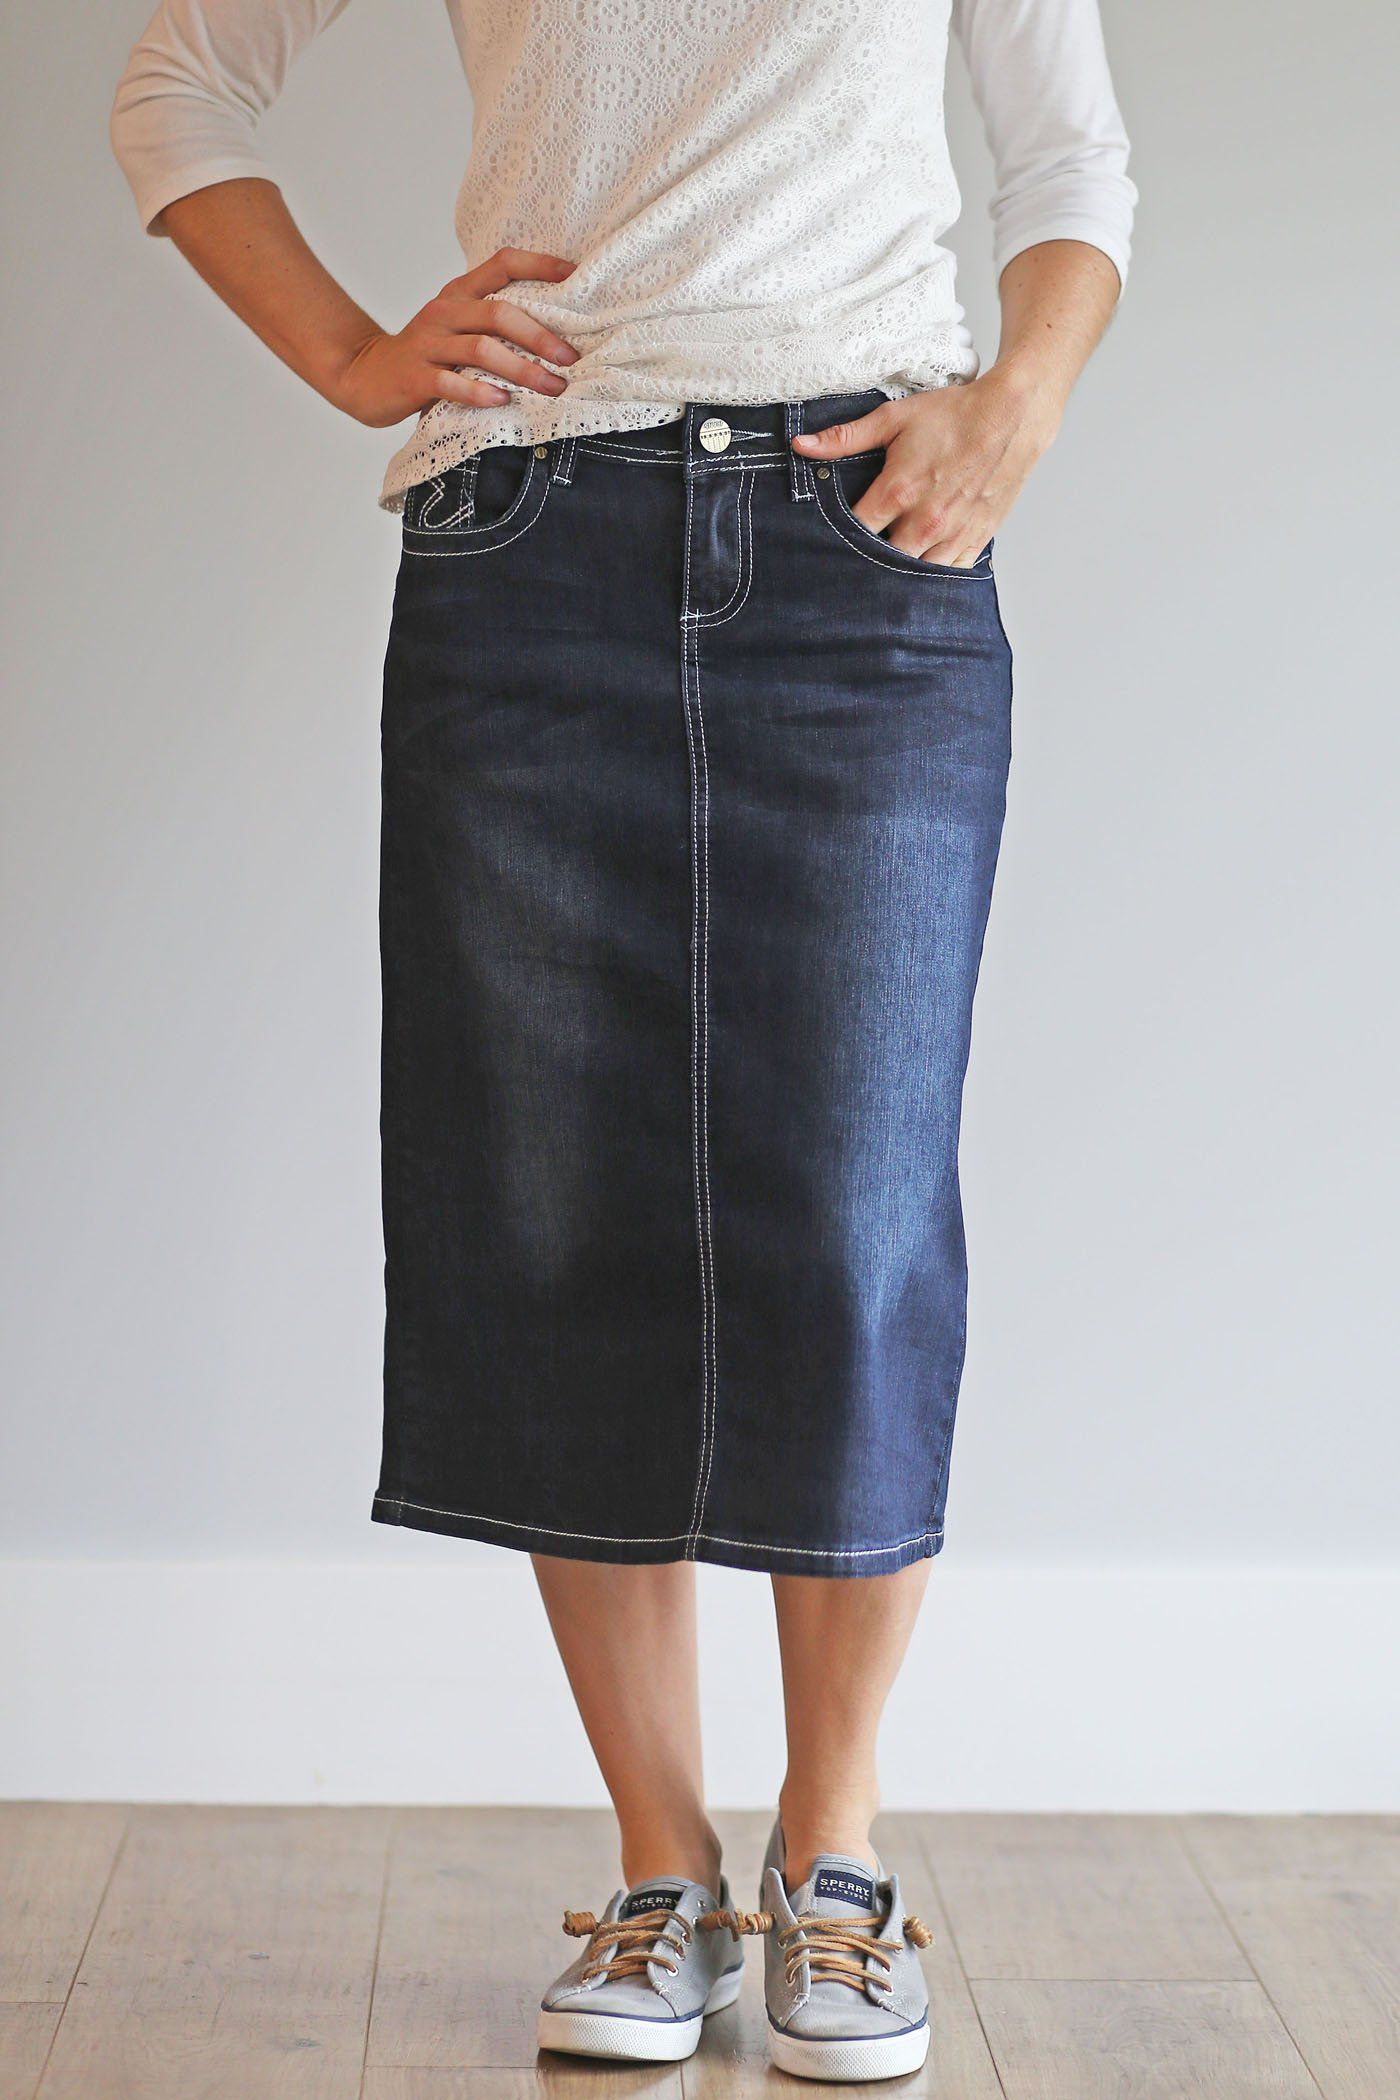 d4738dd5d0e4 Carly Midi Skirt in 2019 | ***My Closet*** | Skirt outfits, Jean ...